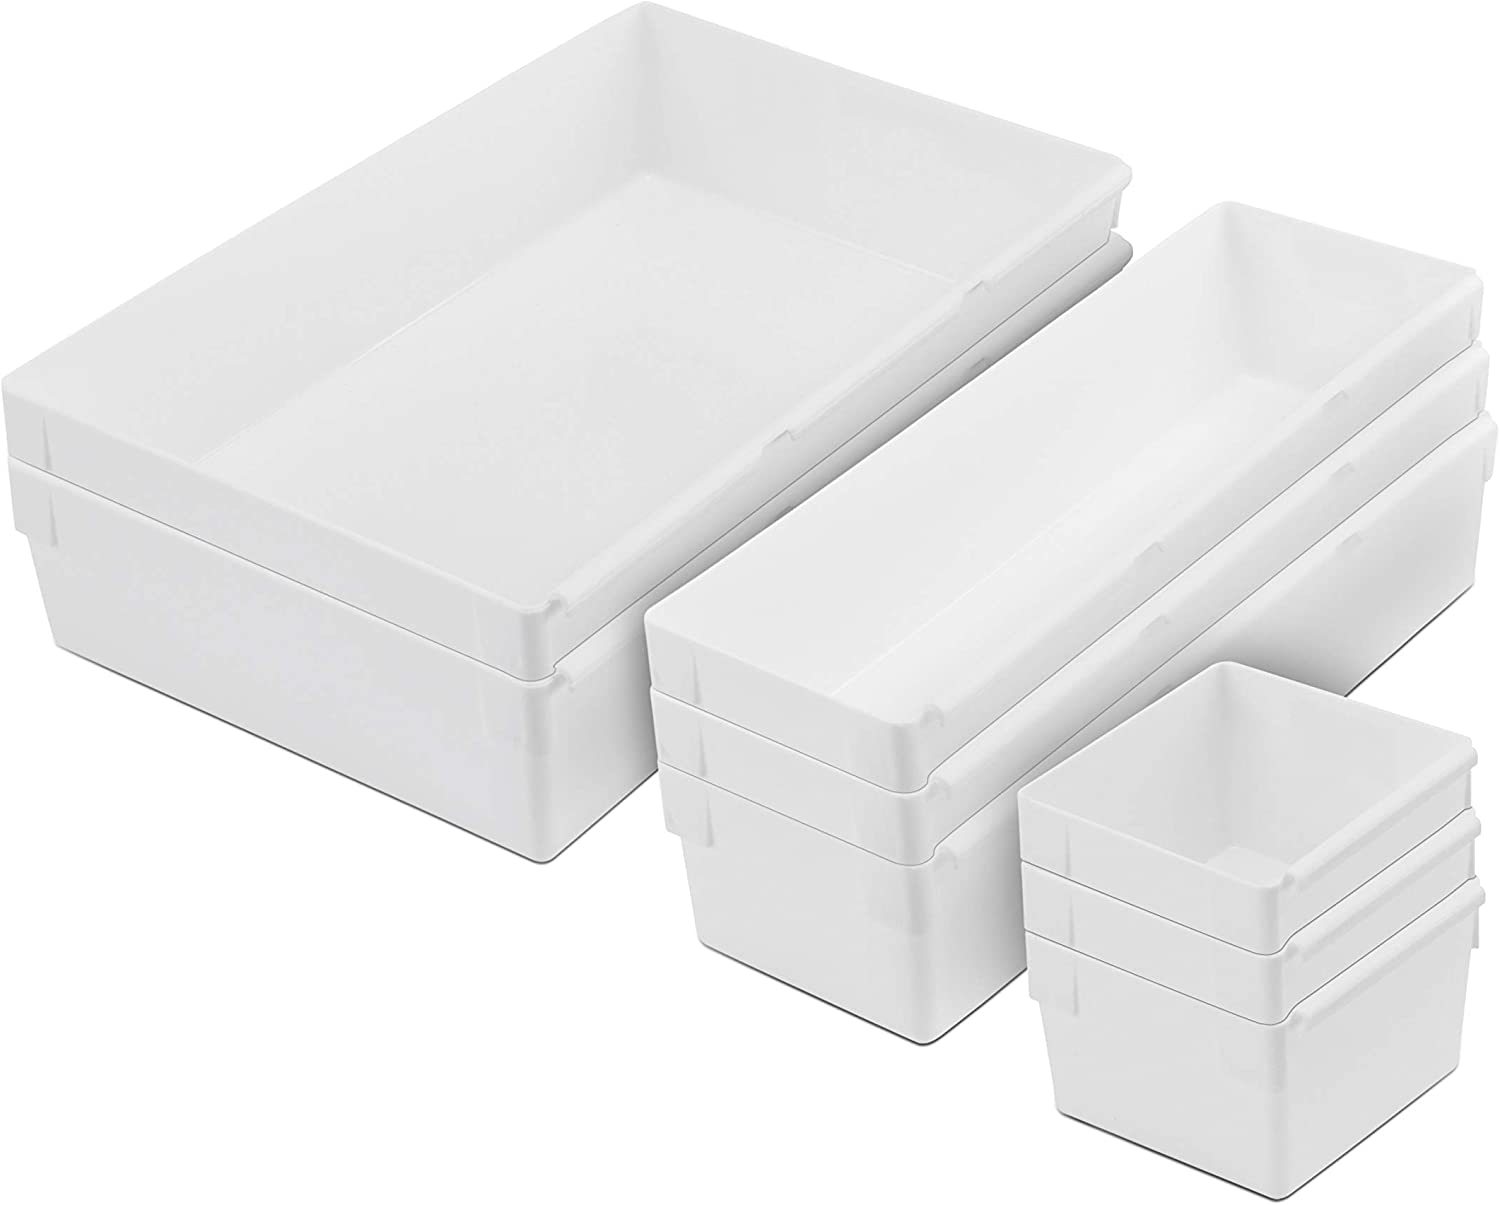 Rubbermaid Drawer Organizer Containers, Modular and Customizable, 48-Piece  Kitchen Organizer Set, White